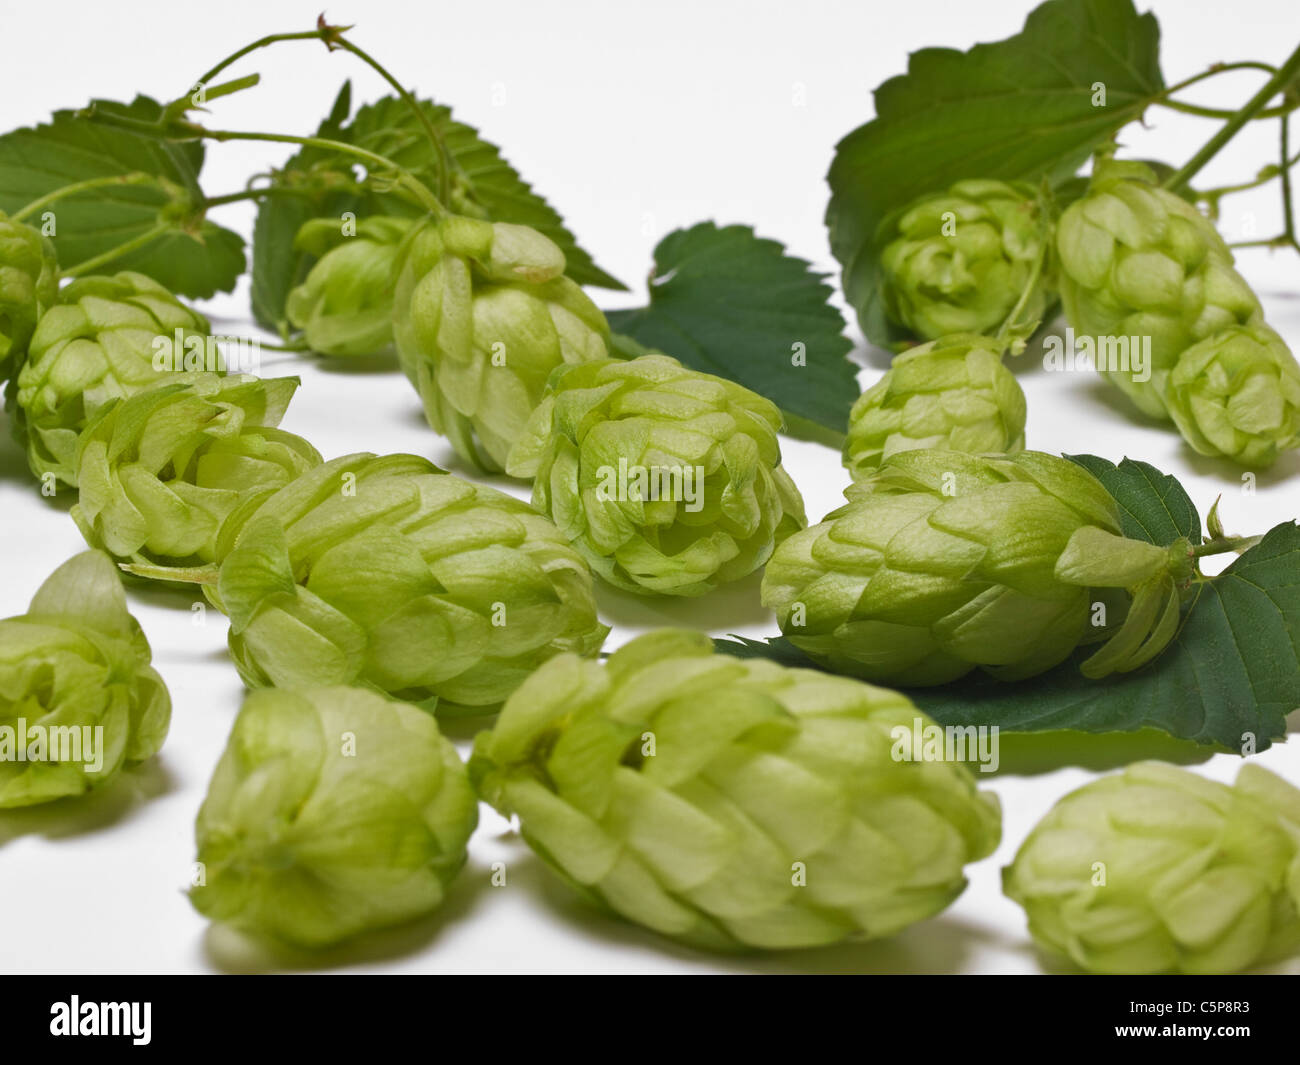 Detailansicht einer Hopfenpflanze | Detail photo of a hop plant - Stock Image